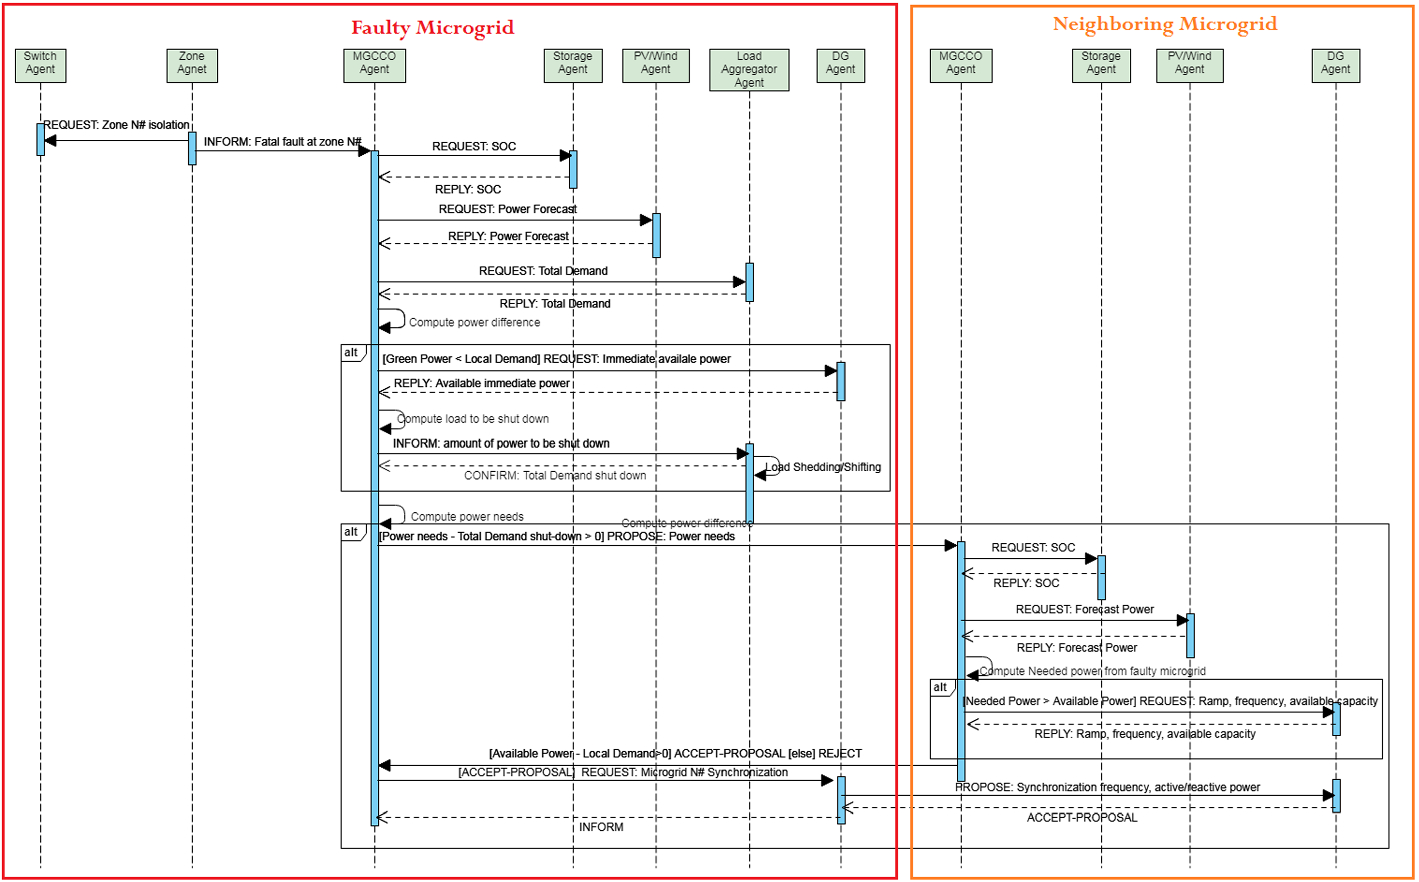 Multi-agent system for microgrids: design, optimization and